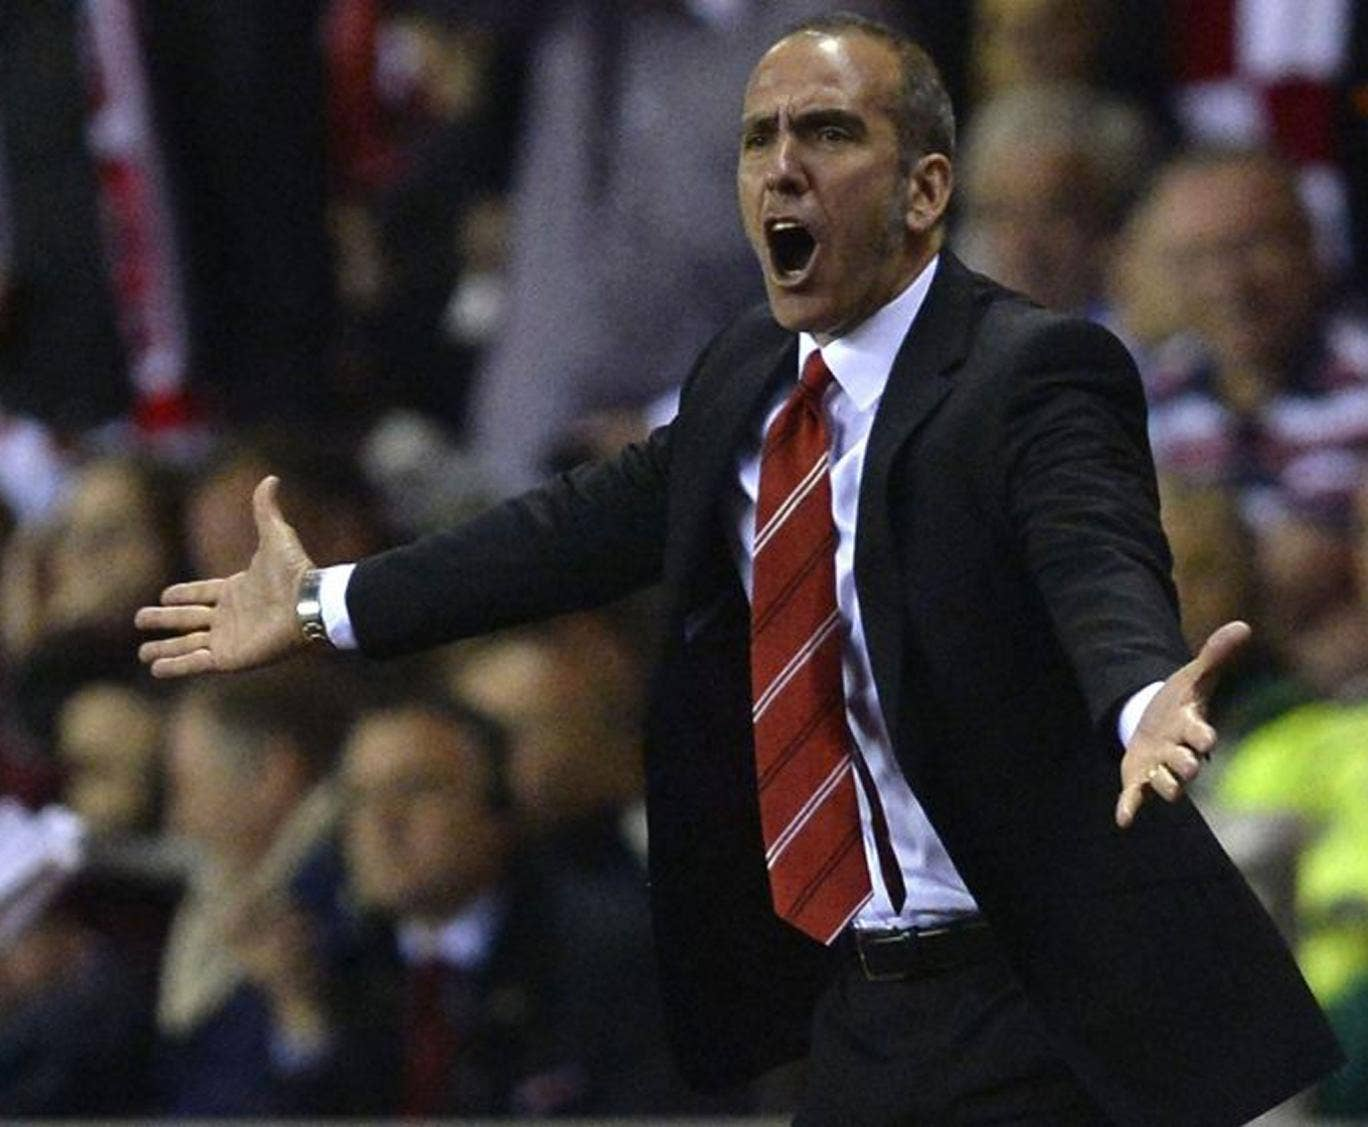 Sunderland's manager Paolo Di Canio reacts during their English Premier League soccer match against Stoke City in Sunderland